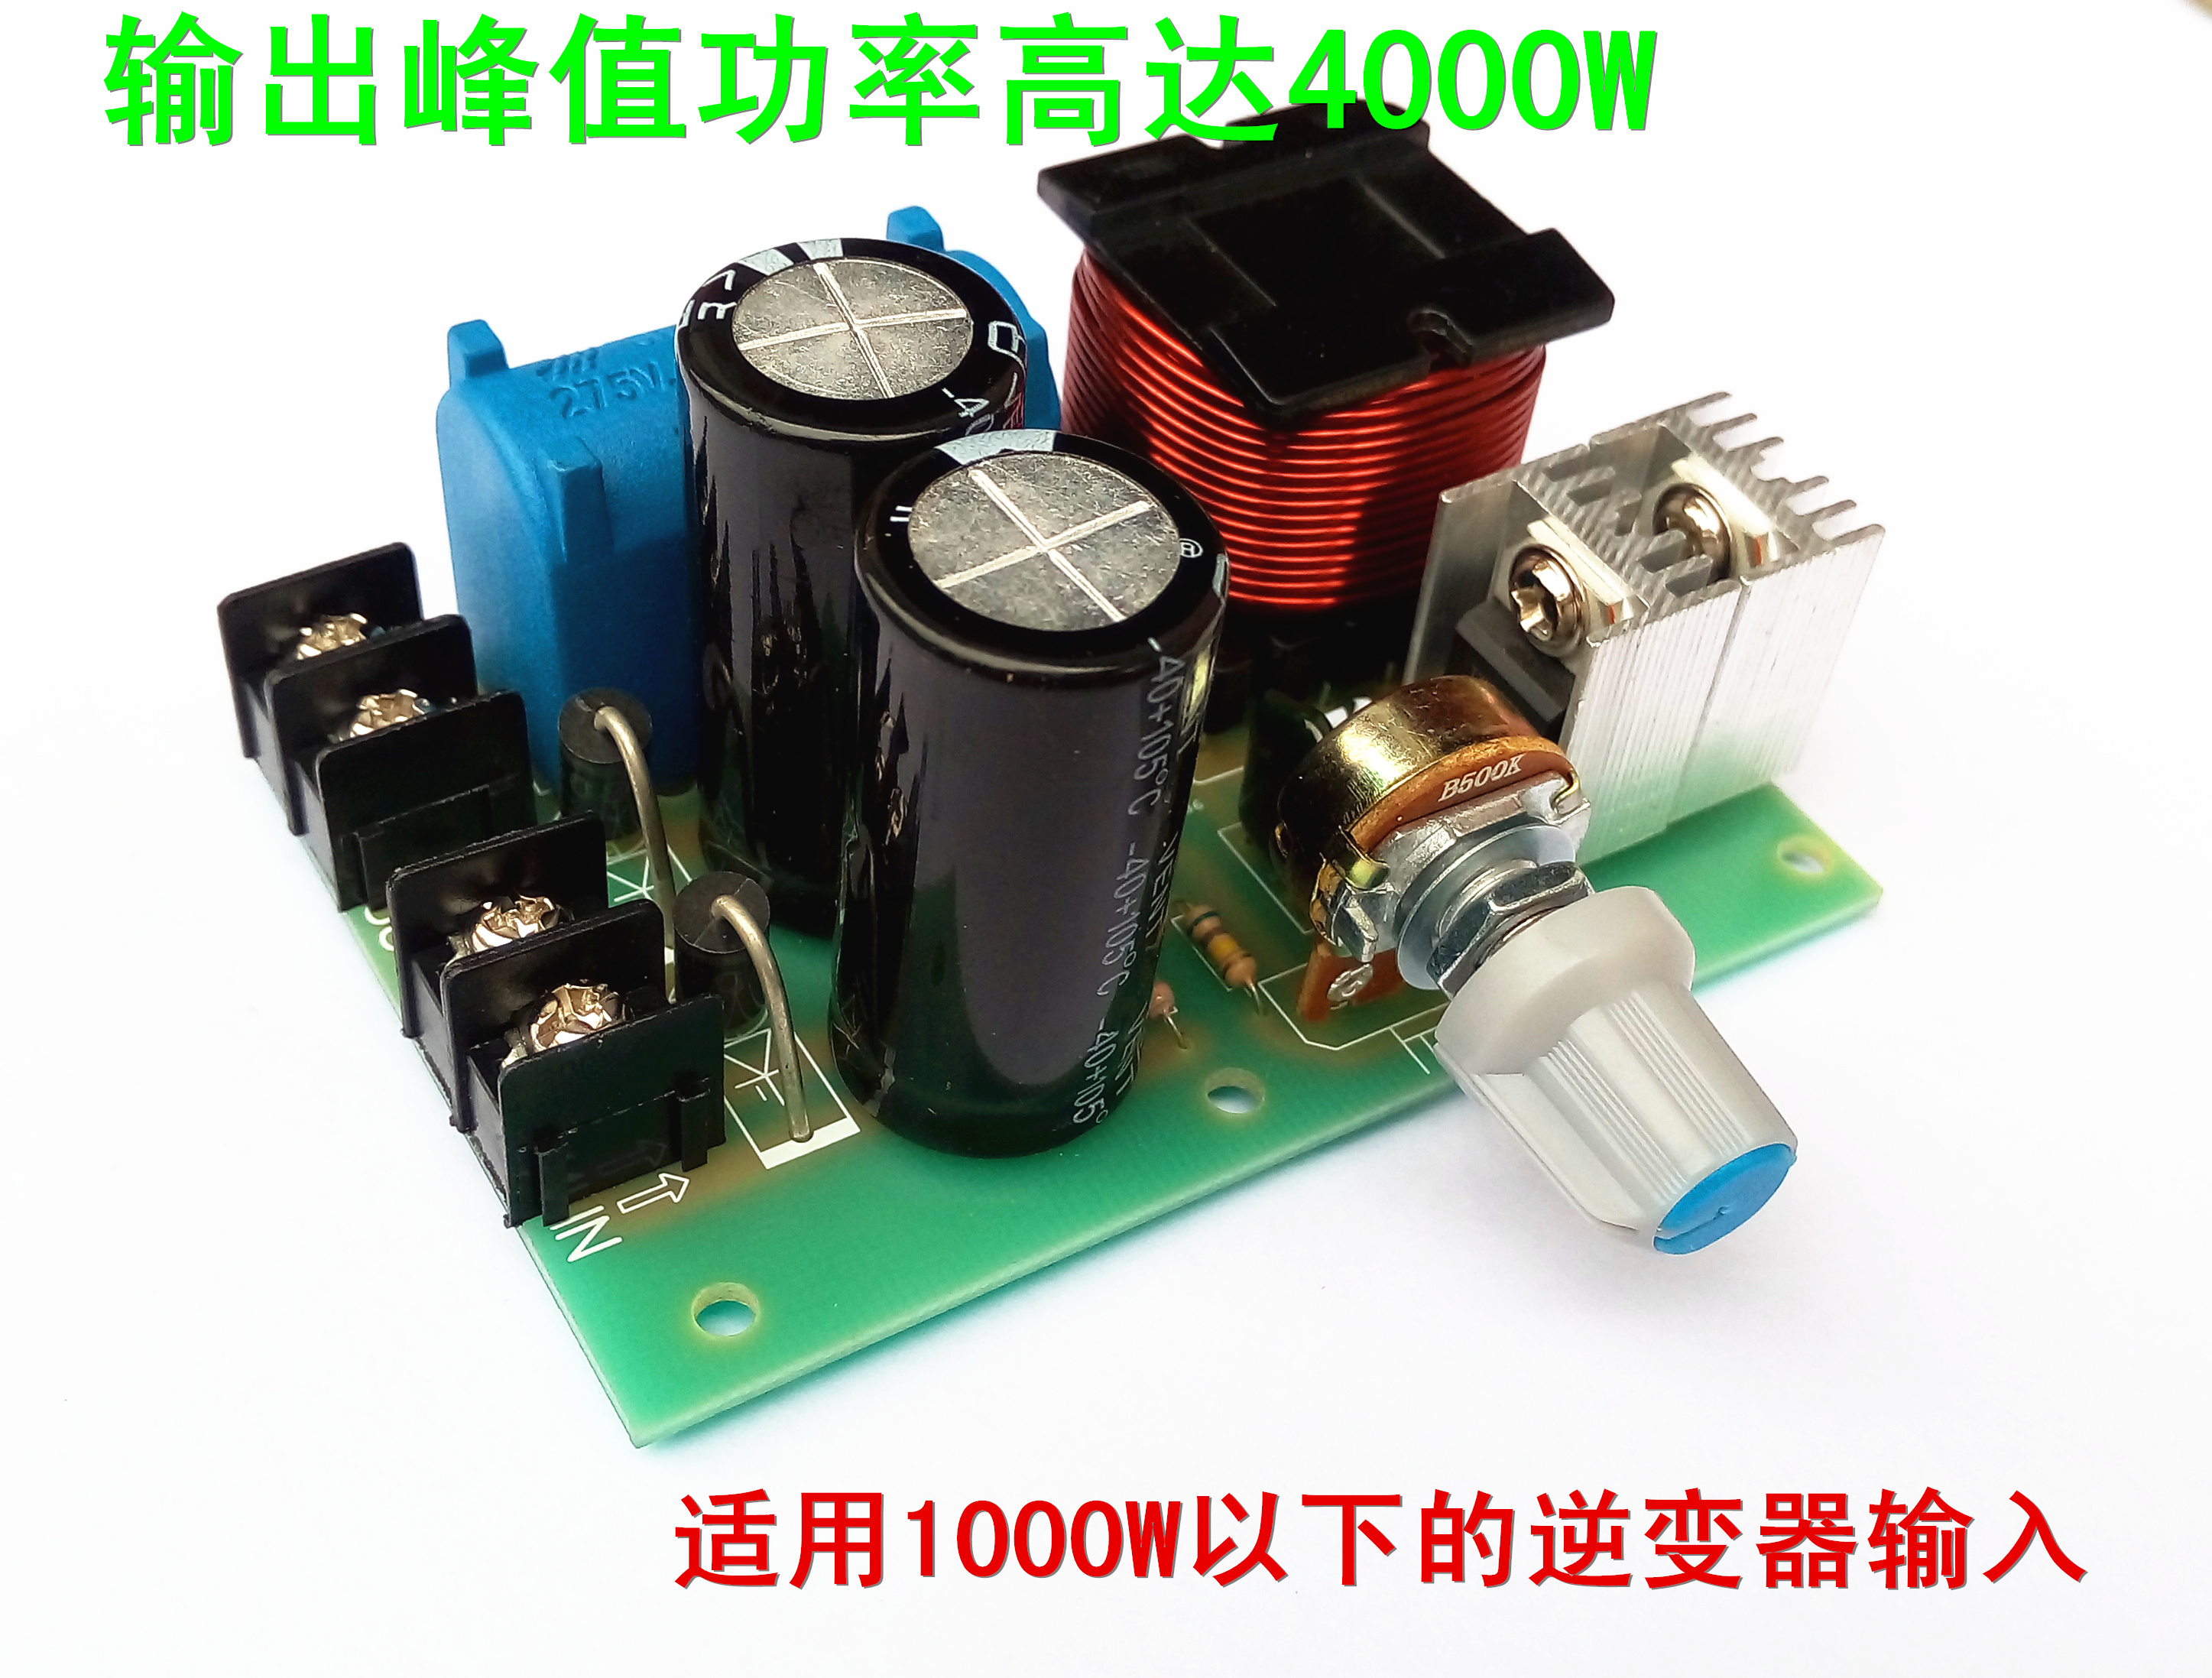 Single Silicon Rear Stage Plate with Mixer Interface, Vehicular Inverter, Generator Booster, FM Pulse Circuit Board tw 4a single stage 4 l rotary vane type portable vacuum pump with a single stage